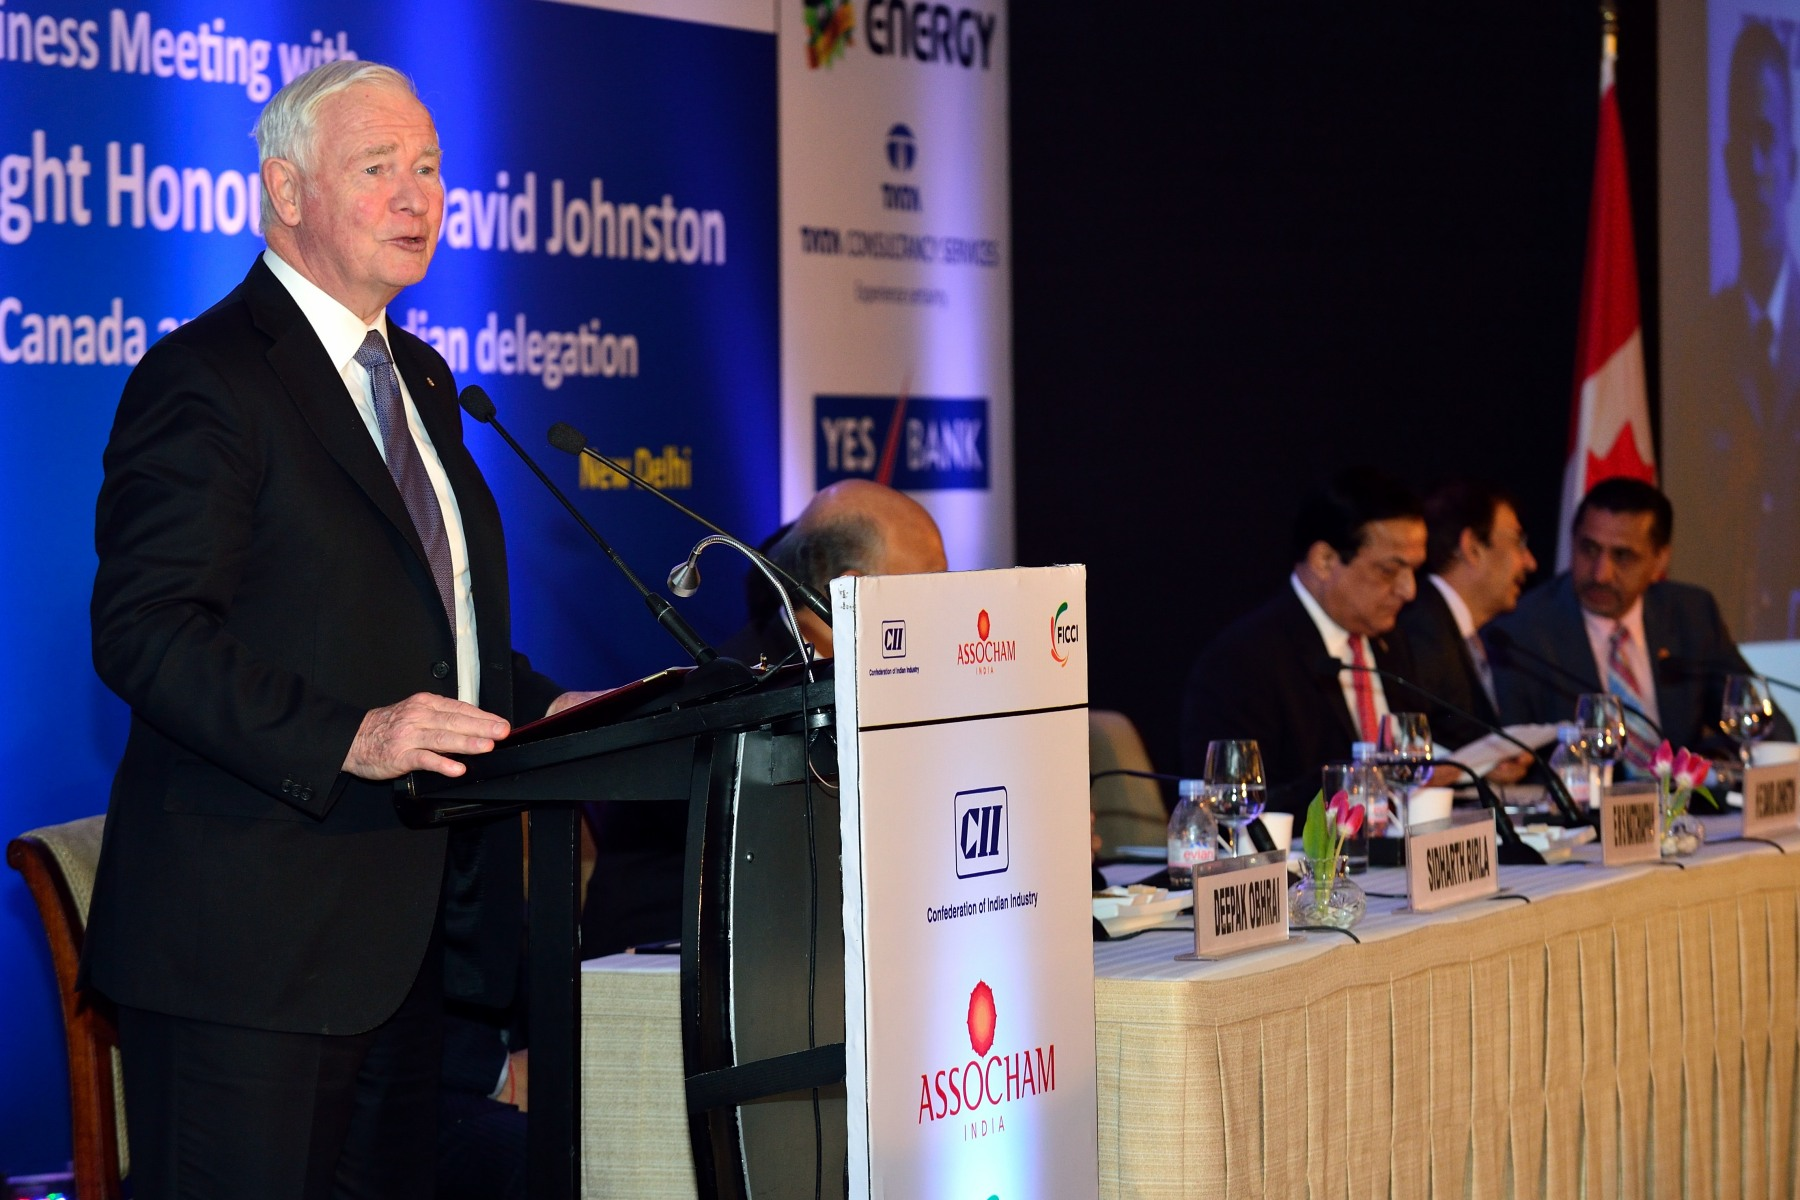 On this occasion, the Governor General delivered an address on Canada-India business relations to business leaders.